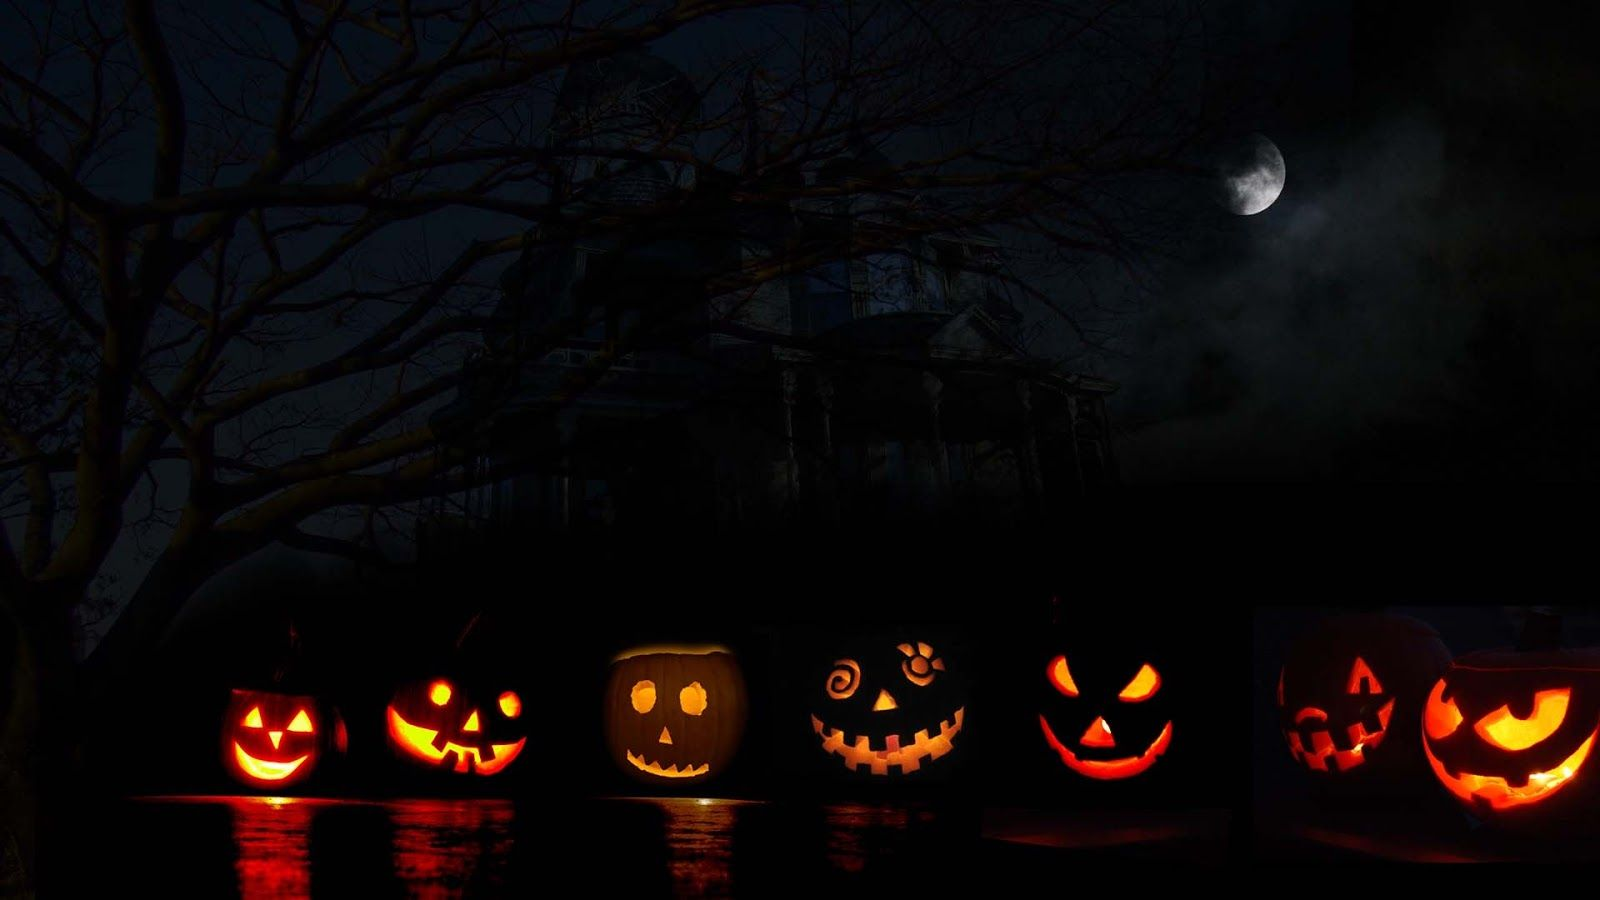 Live Wallpapers Free On Halloween Phoneia Halloween Desktop Wallpaper Pumpkin Wallpaper Halloween Wallpaper Backgrounds